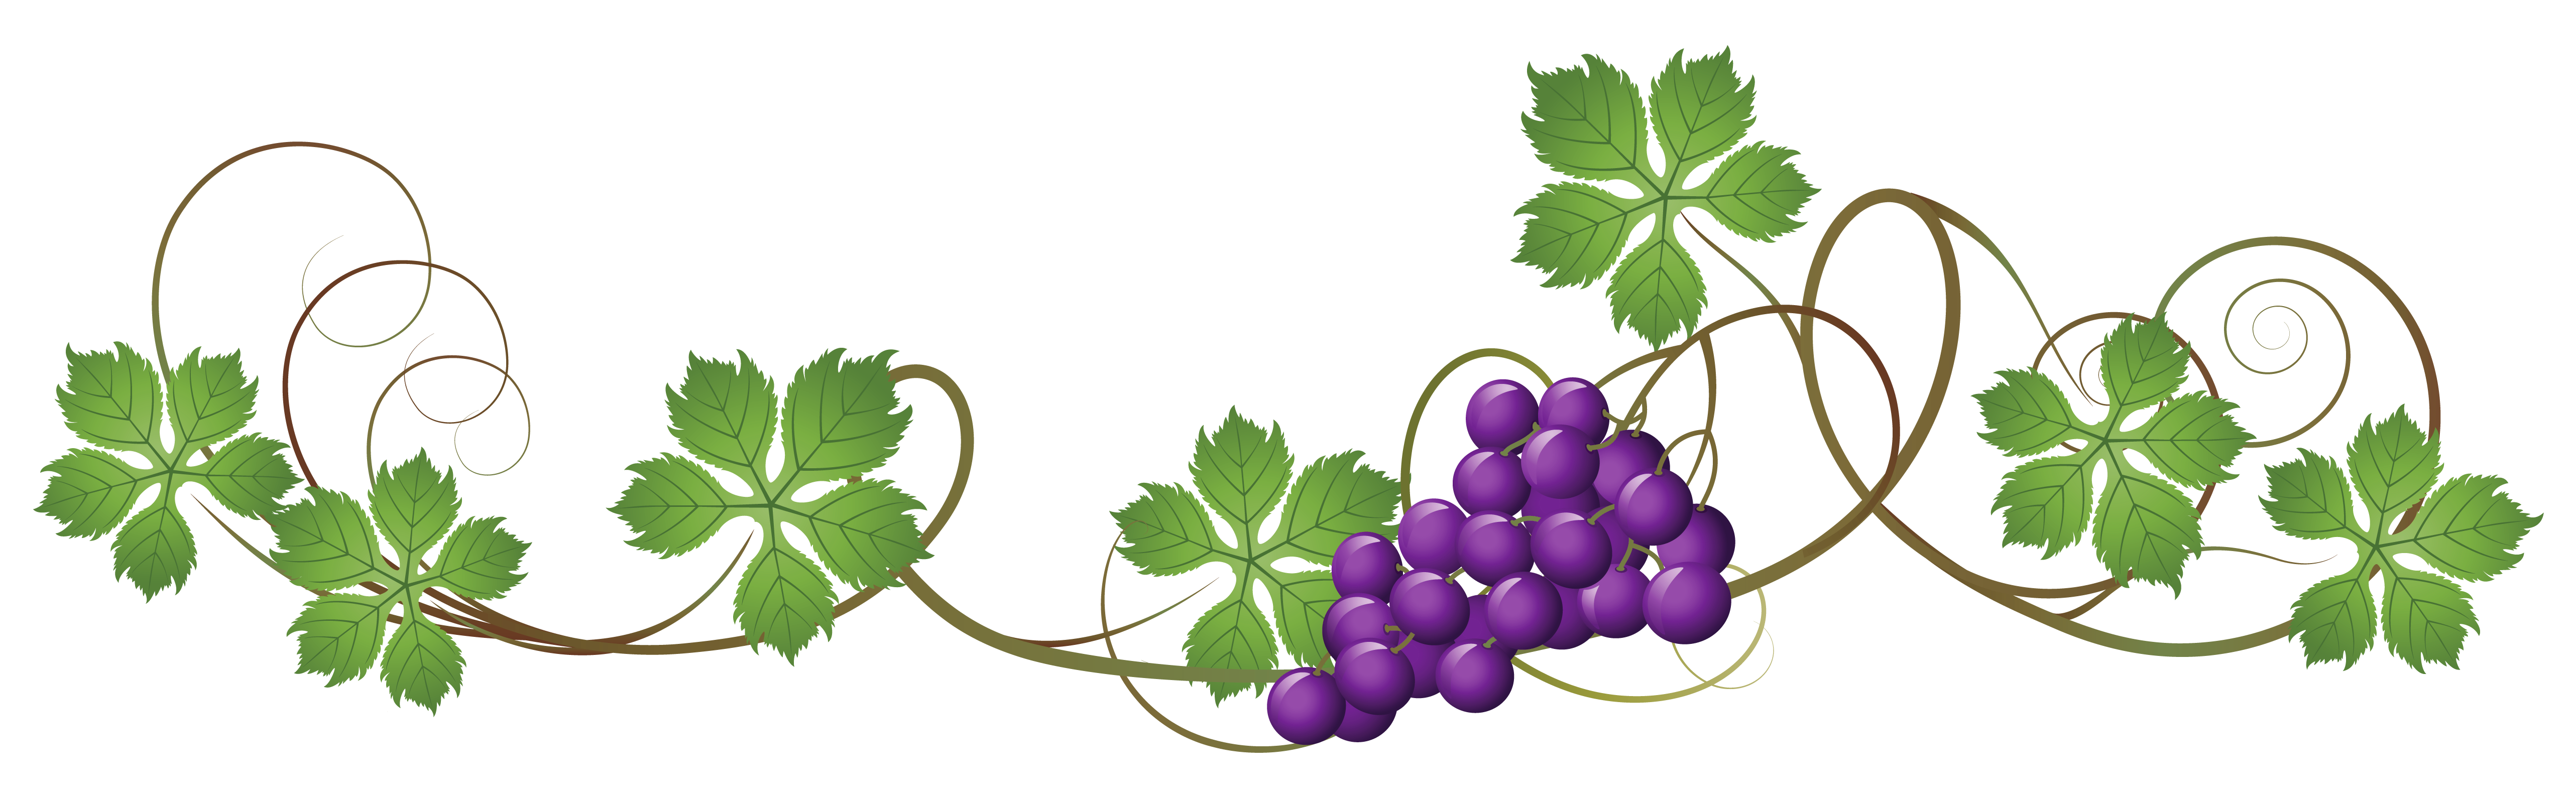 Purple flower vine clipart clipart black and white download 28+ Collection of Grape Vines Clipart | High quality, free cliparts ... clipart black and white download